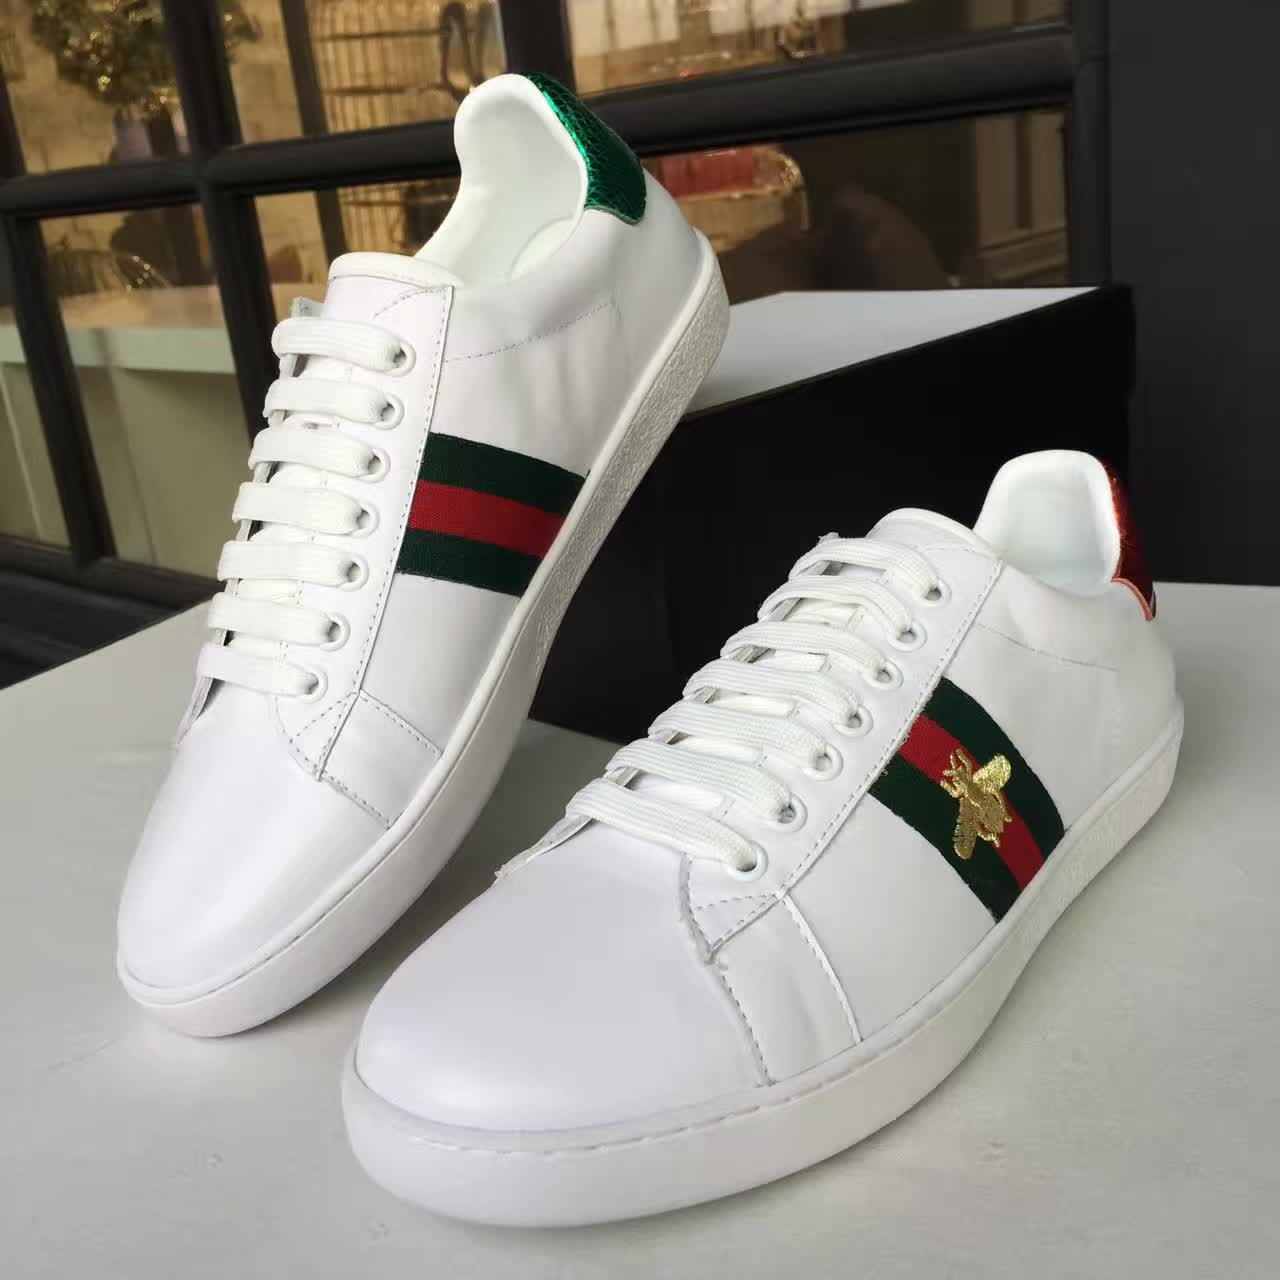 Fake Gucci Shoes 78306 239 00 Replica Bags